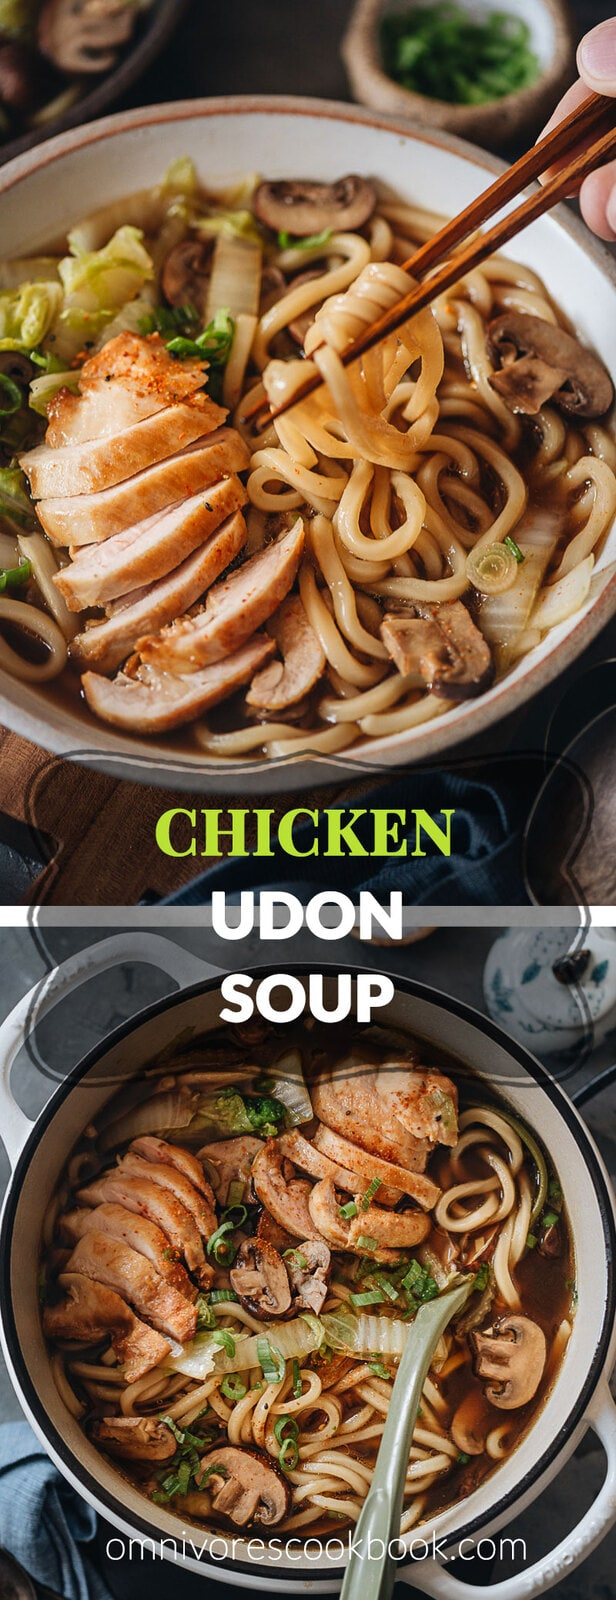 Chicken Udon Soup - A super simple one-pot noodle soup that guarantees maximum satisfaction with beautifully charred chicken, rich soup, thick noodles, and tender veggies.